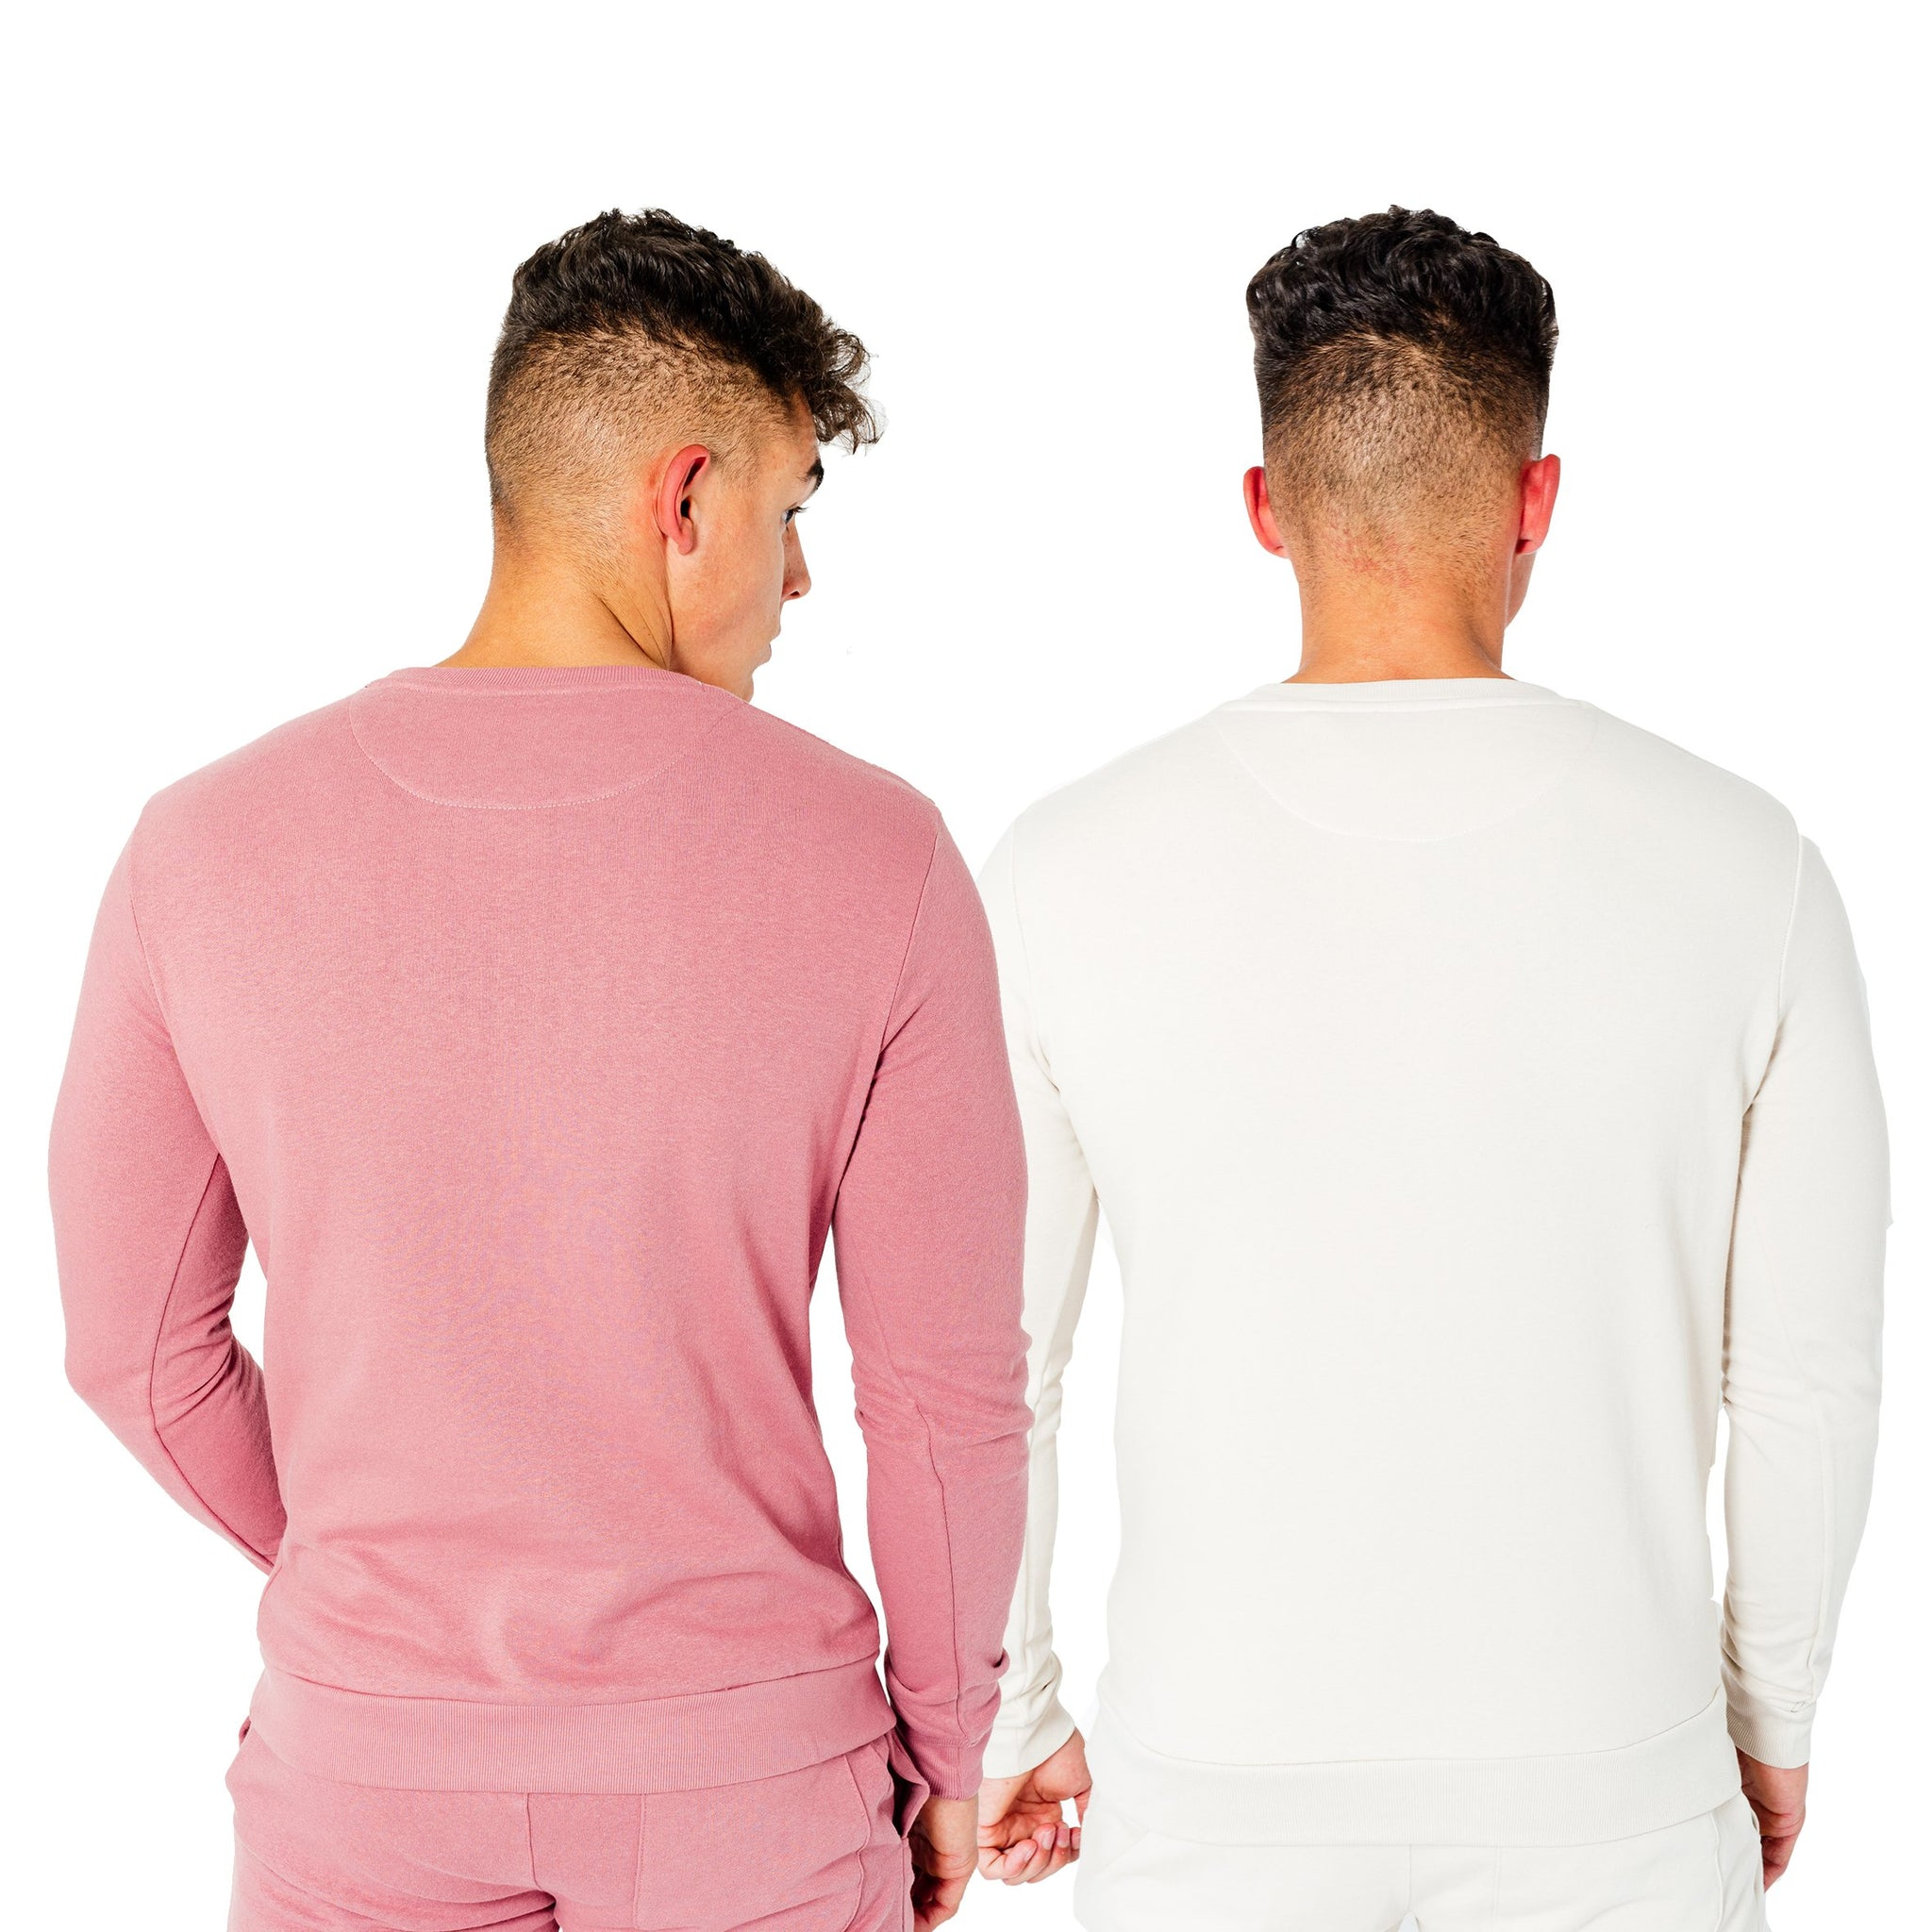 Men's Wright Two Pack Sweatshirts in Stone & Dusty Pink - DEFEND LONDON